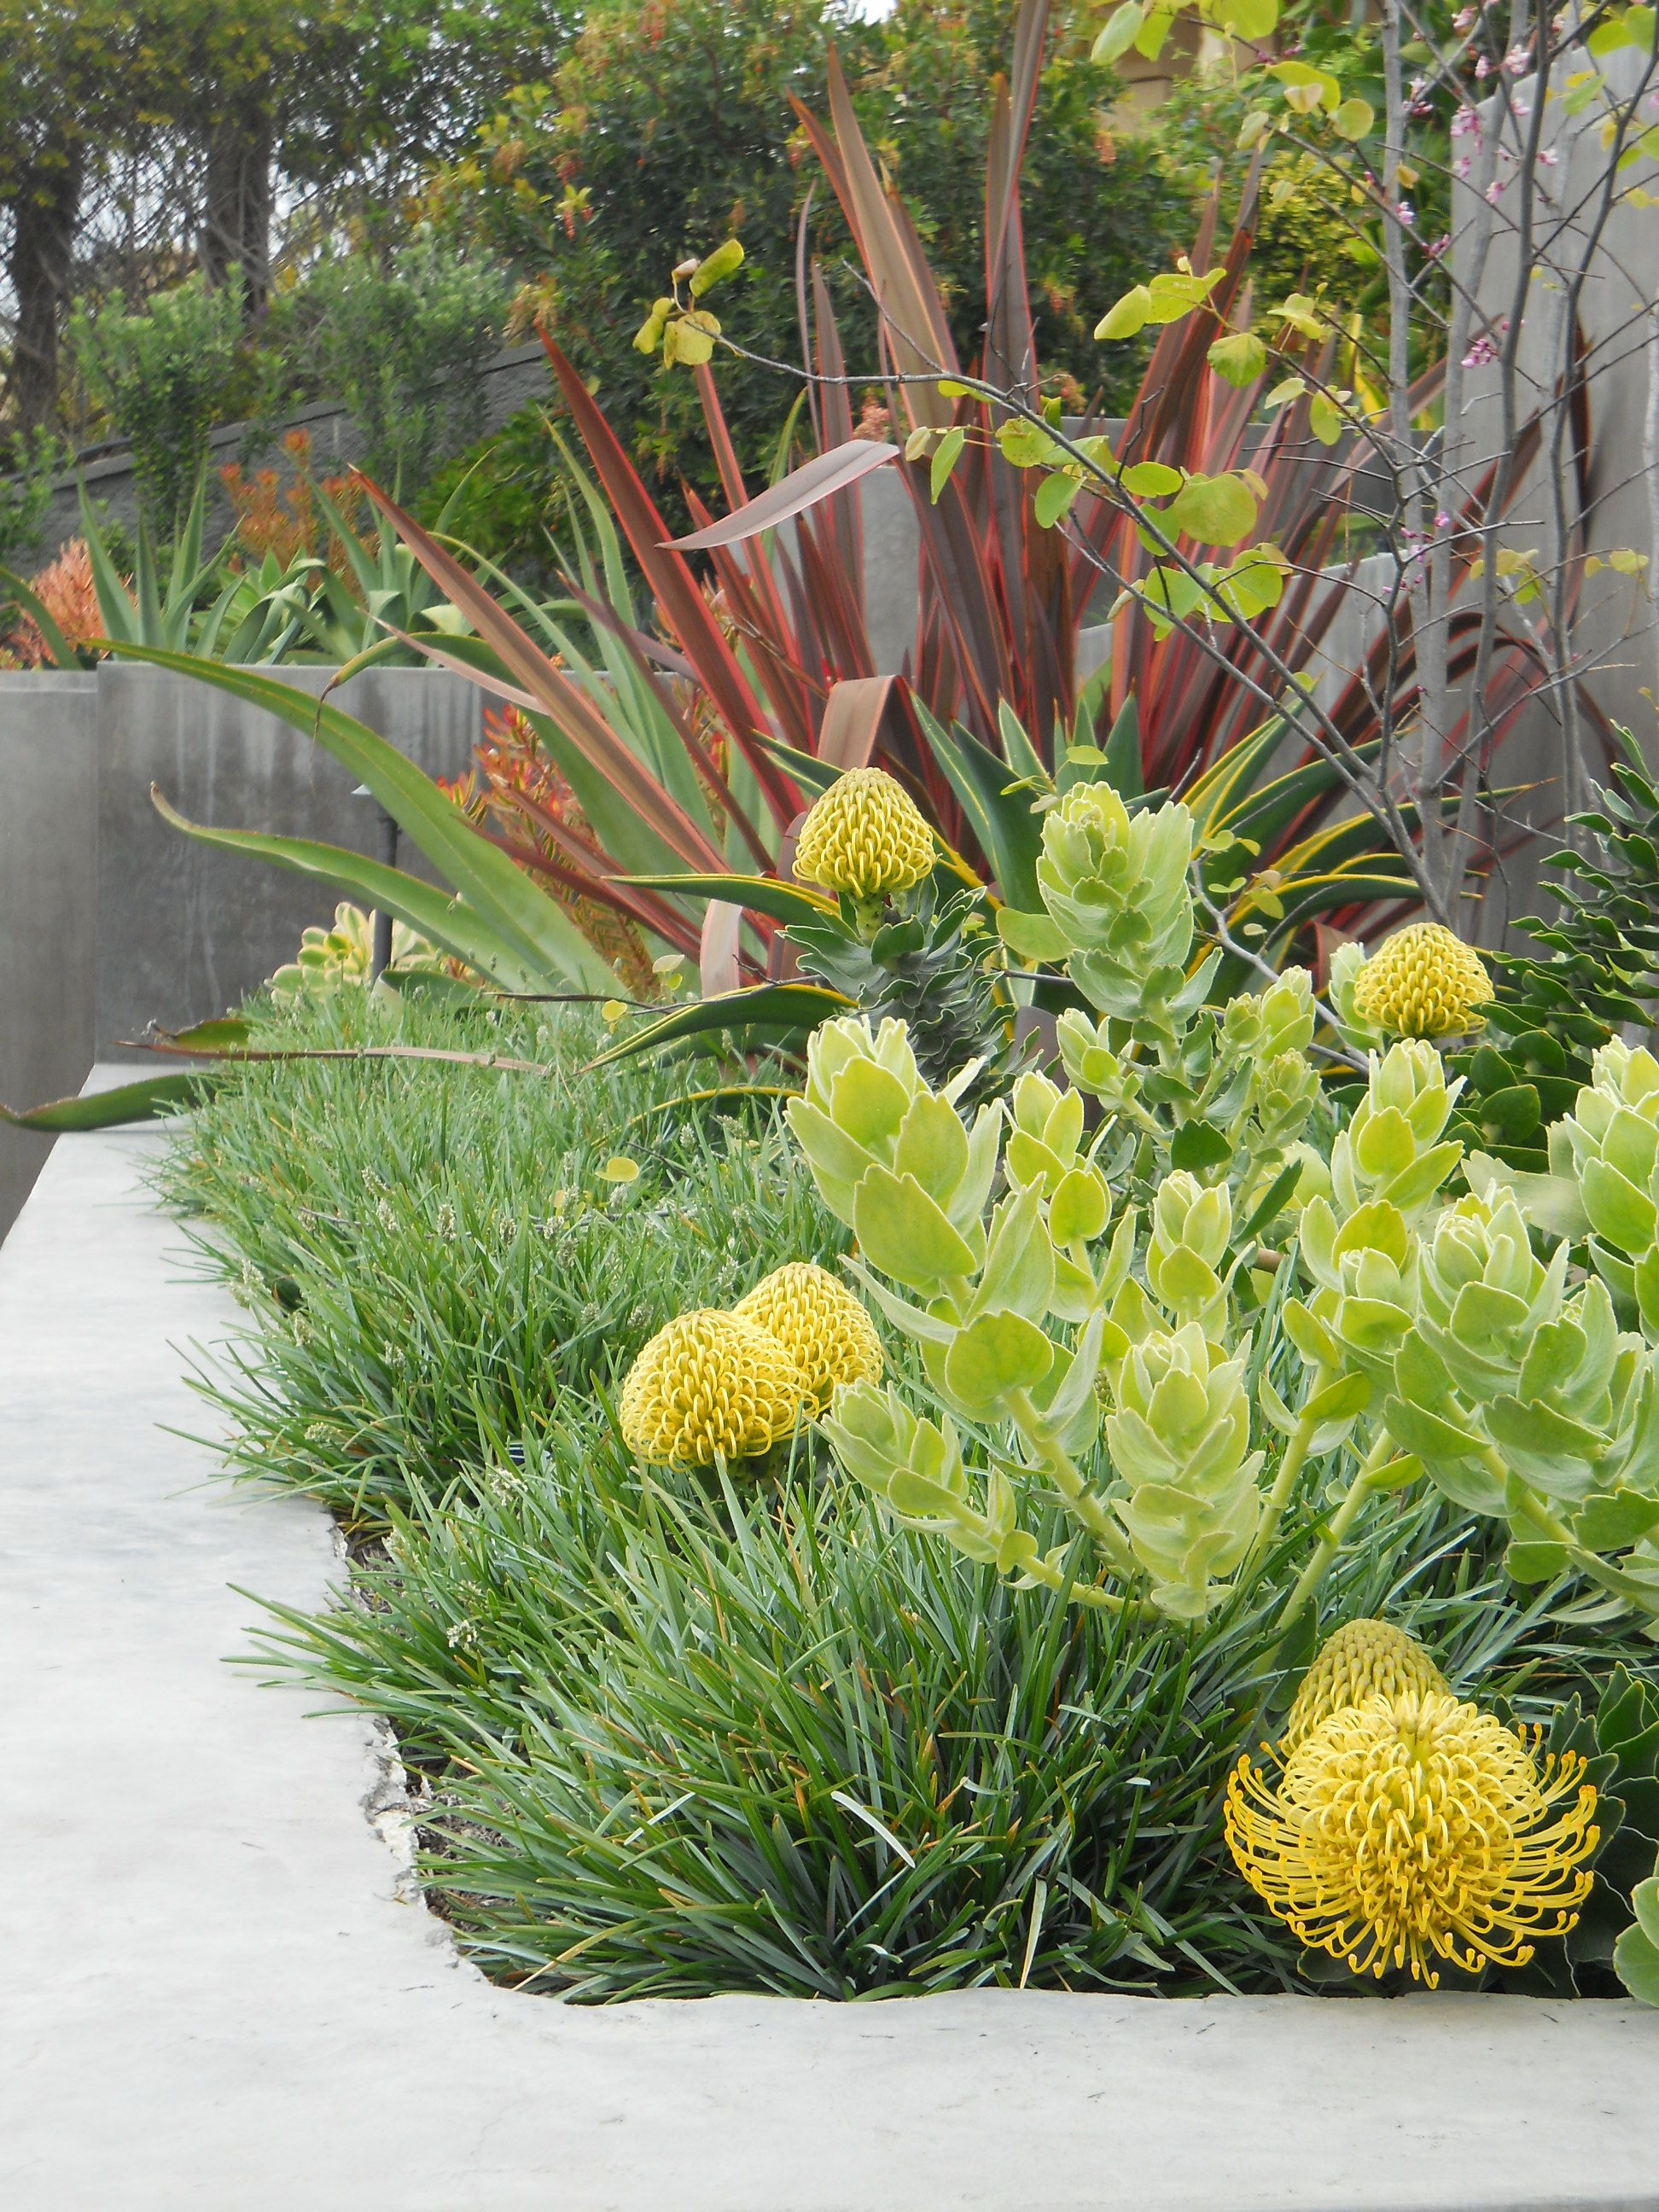 Ca friendly design ideas drought tolerant firebird and for Garden design ideas canberra